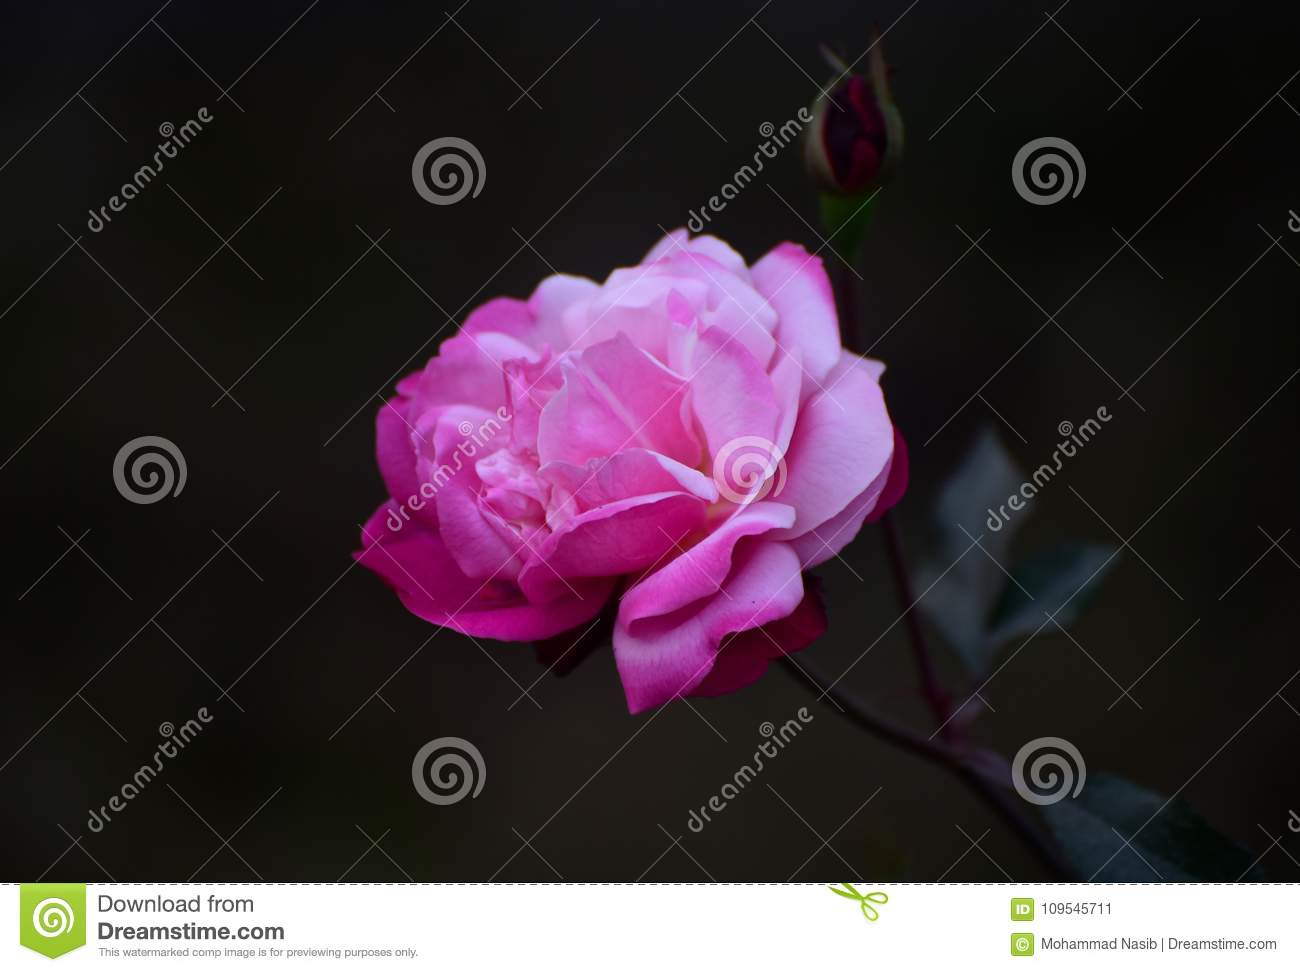 Pink rose flower with dark background photograph stock image image the beautiful pink coloured rose flower with a dark background unique stock photograph izmirmasajfo